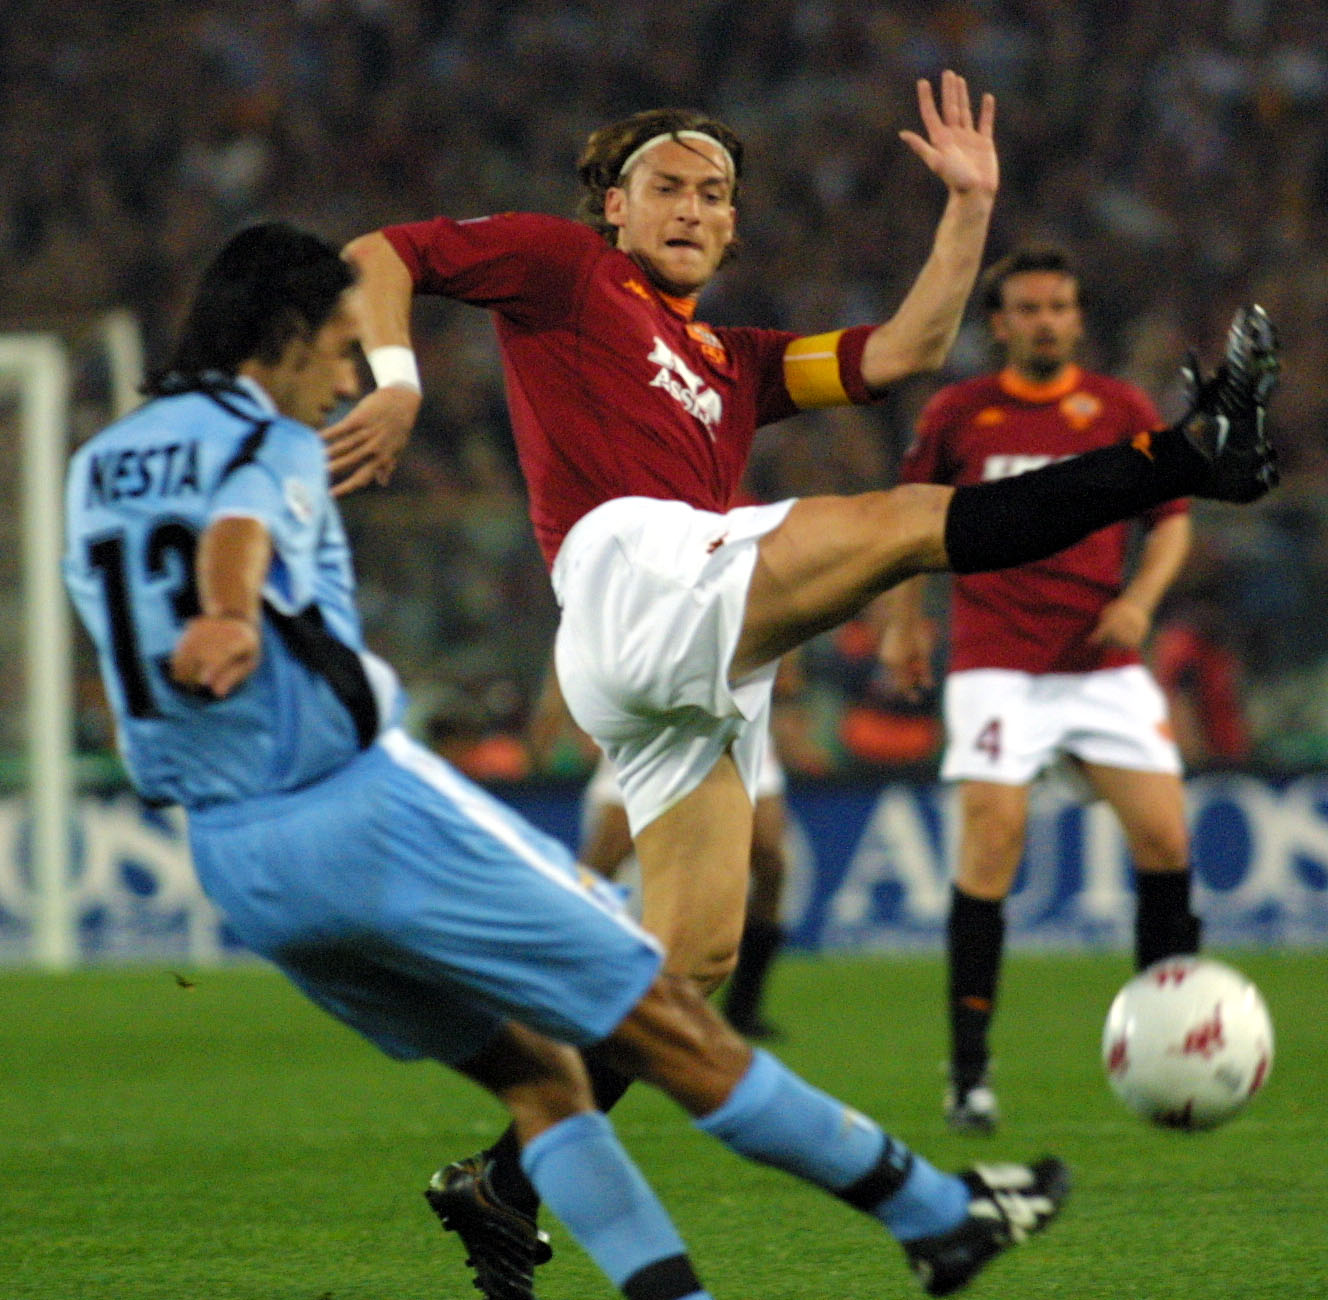 ROME, ITALY: Lazio Rome captain Alesandro Nesta (G) figths for the ball with AS Roma captain Francesco Totti during their Italian first league derby game, at the Rome's Olympic Stadium, 29 April 2001. AFP PHOTO GABRIEL BOUYS (Photo credit should read GABRIEL BOUYS/AFP/Getty Images)